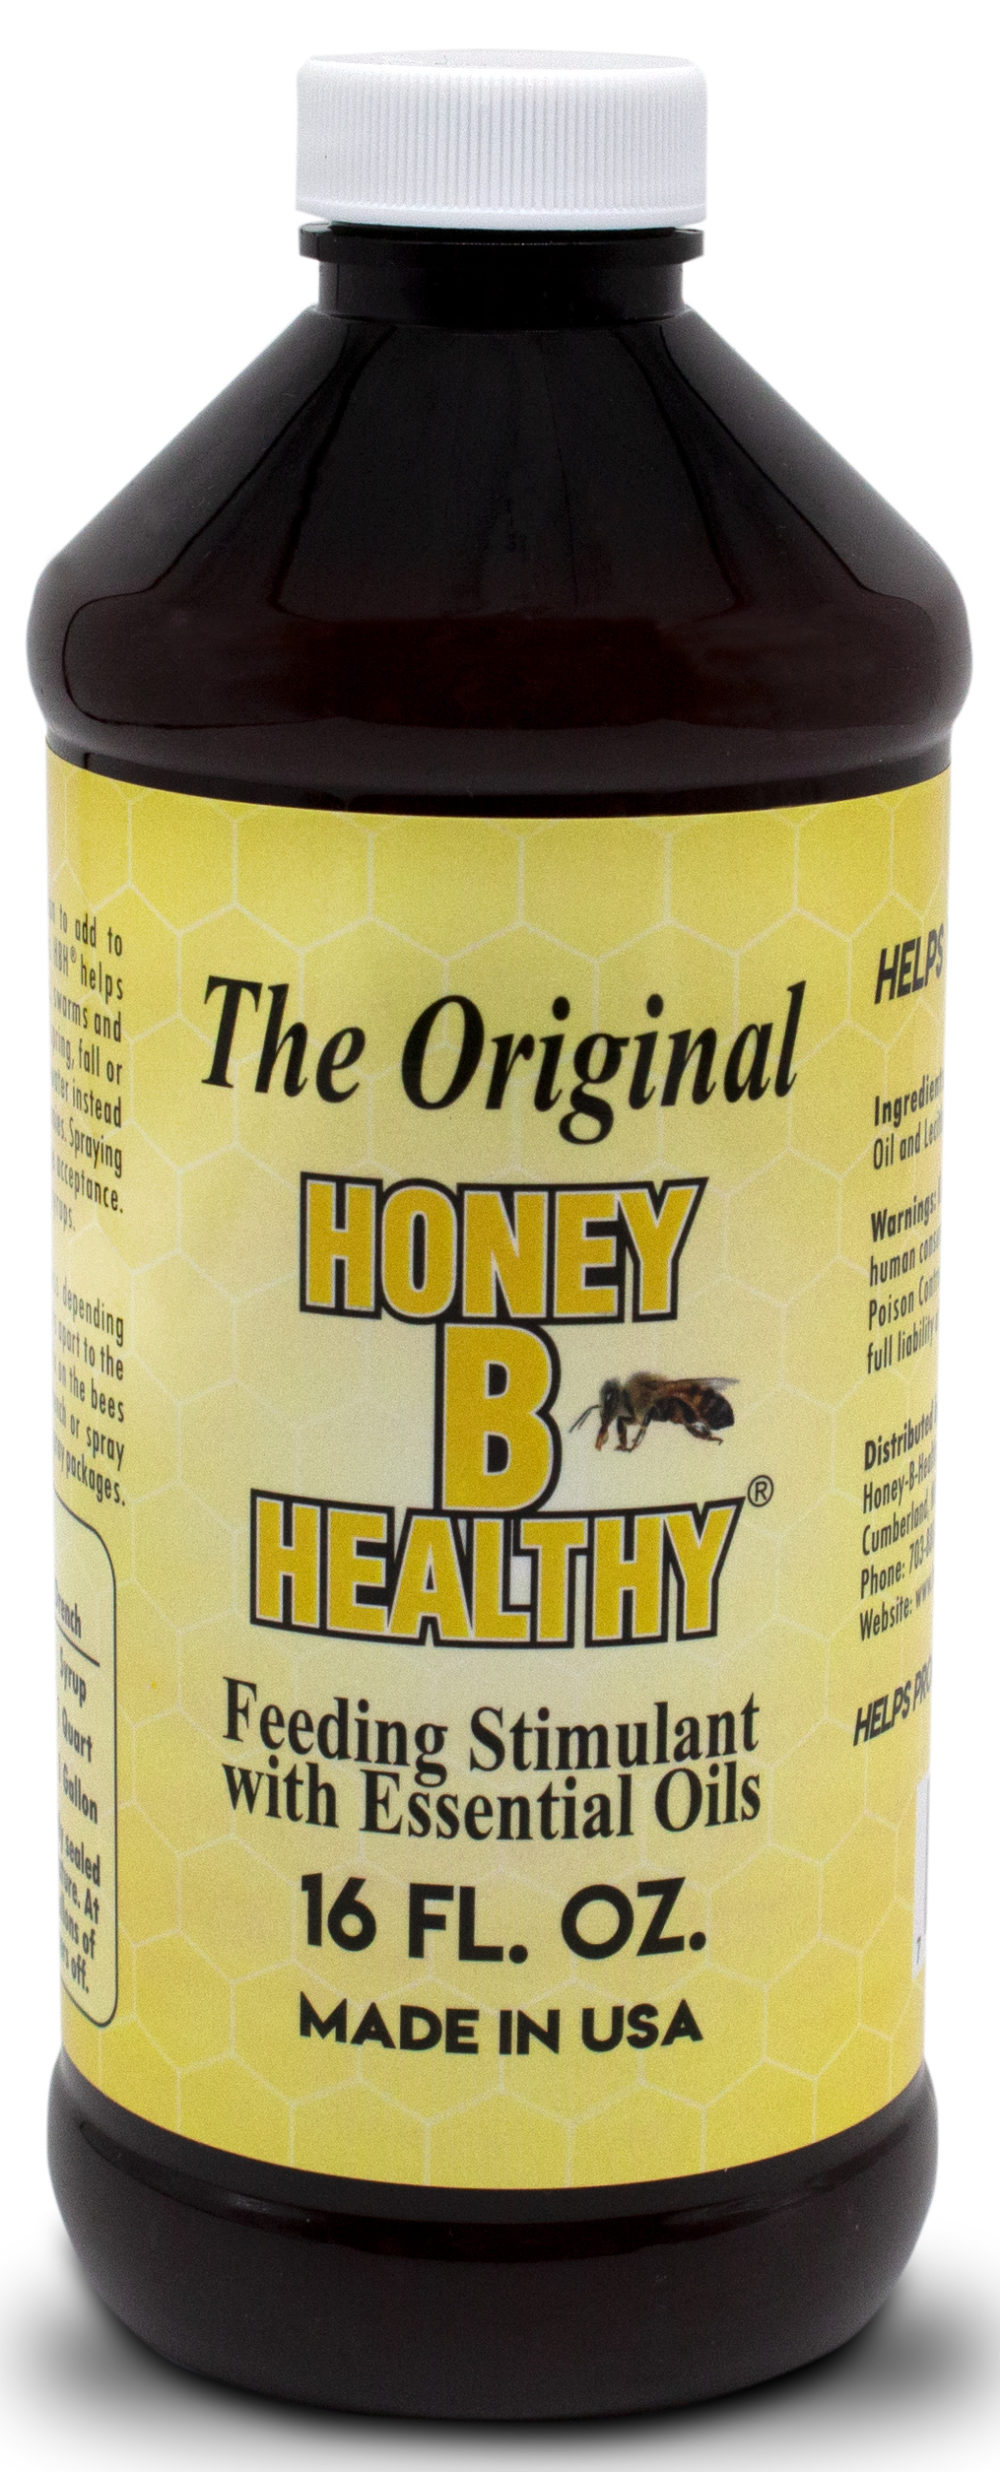 Honey B Healthy